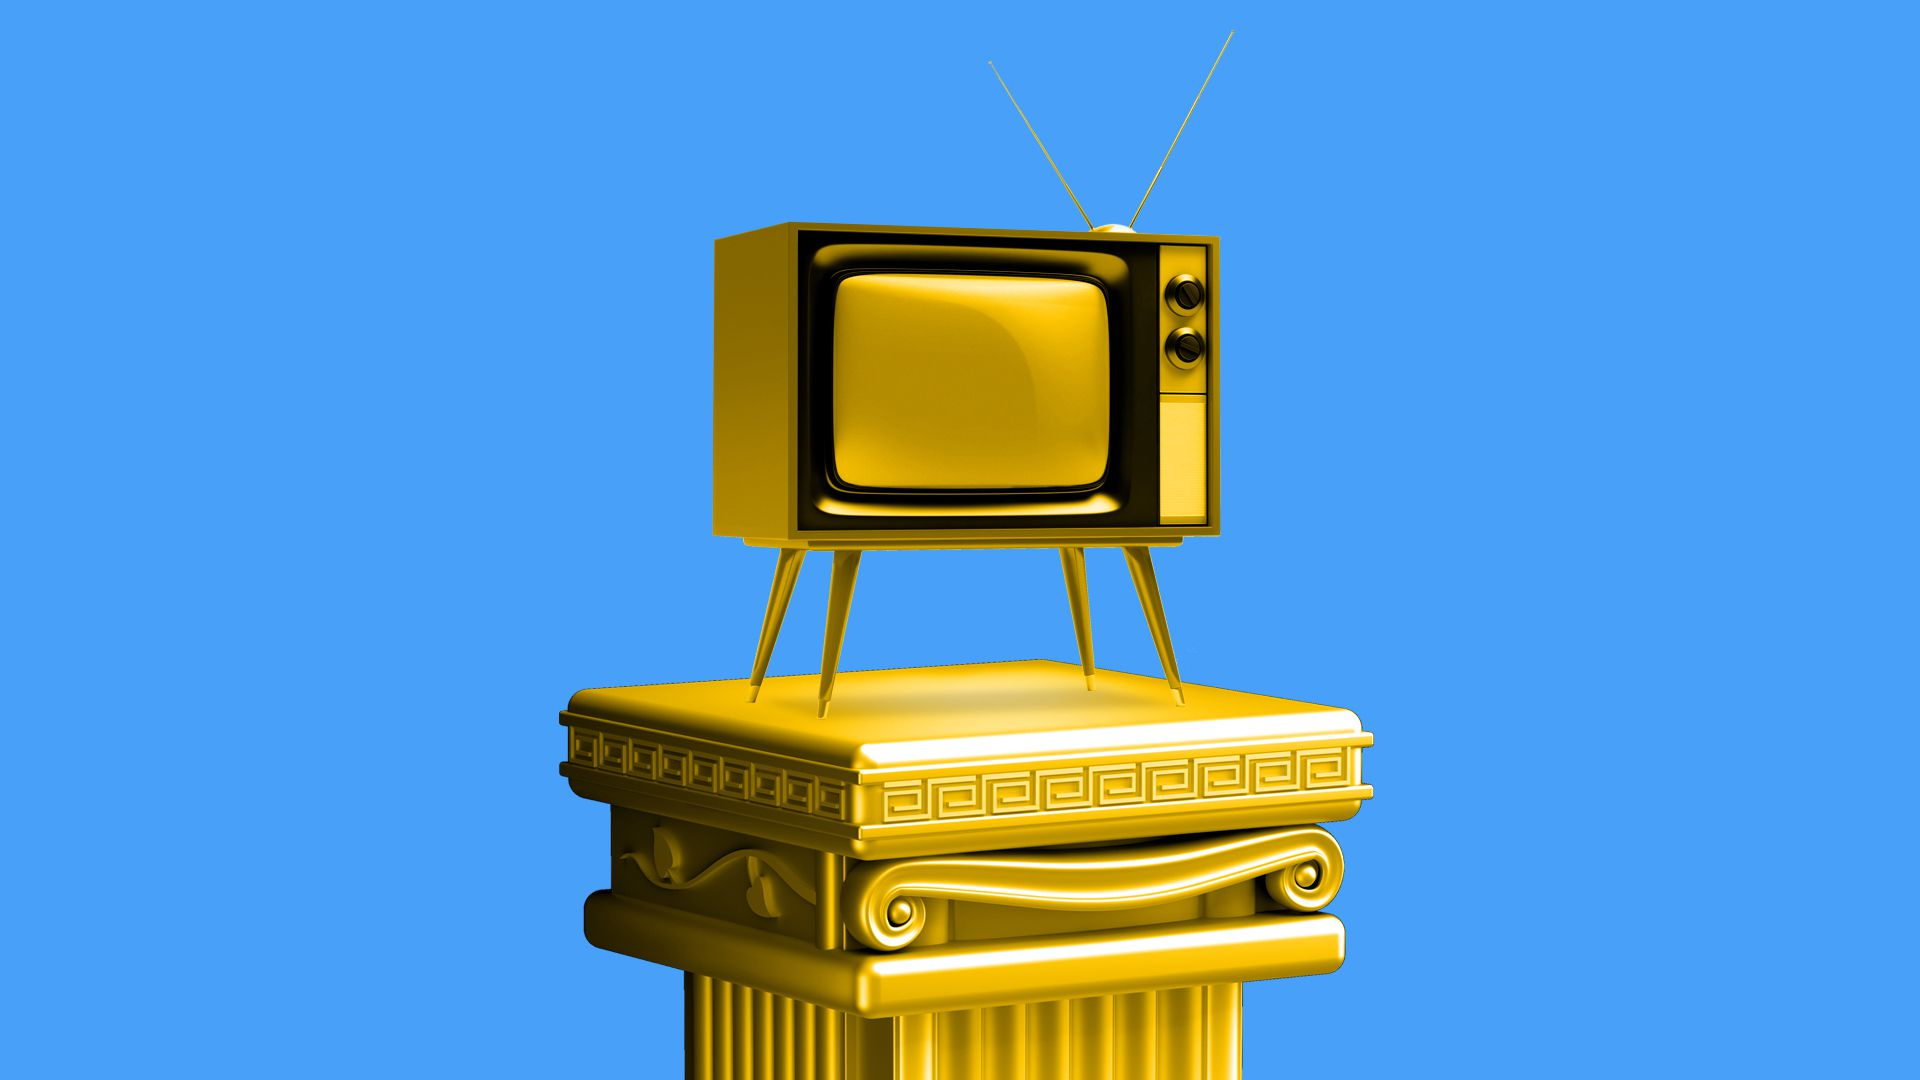 Illustration of golden television on top of pedestal